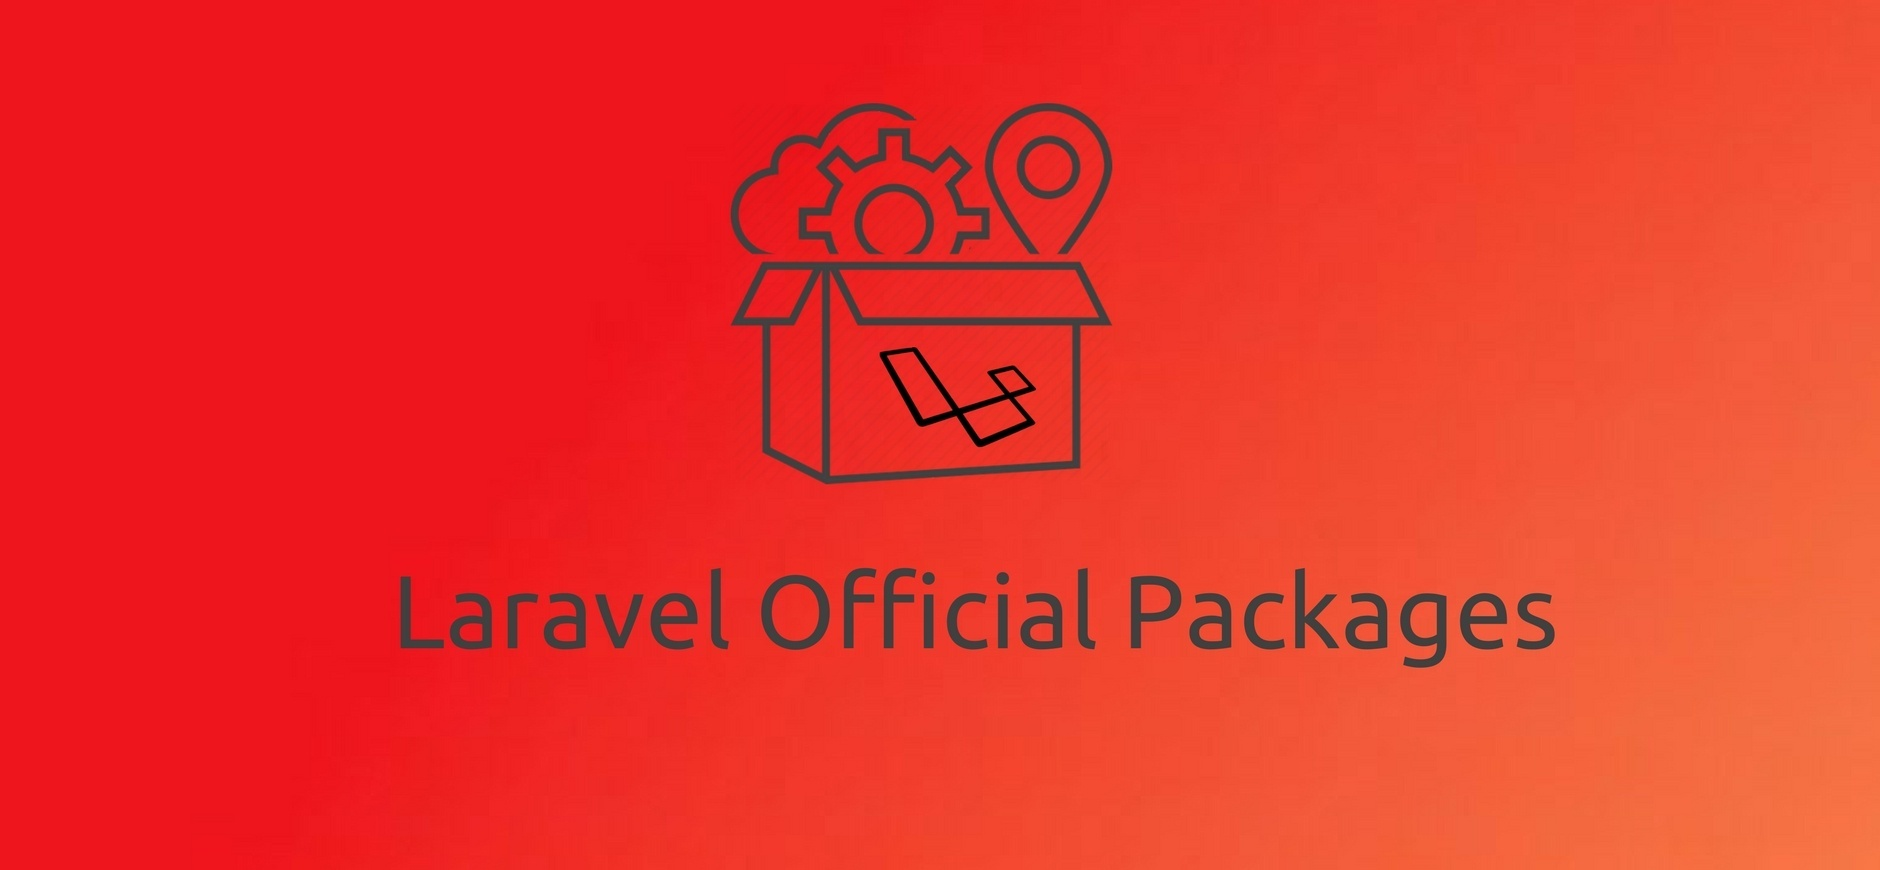 What are some official packages provided by Laravel? - Quora